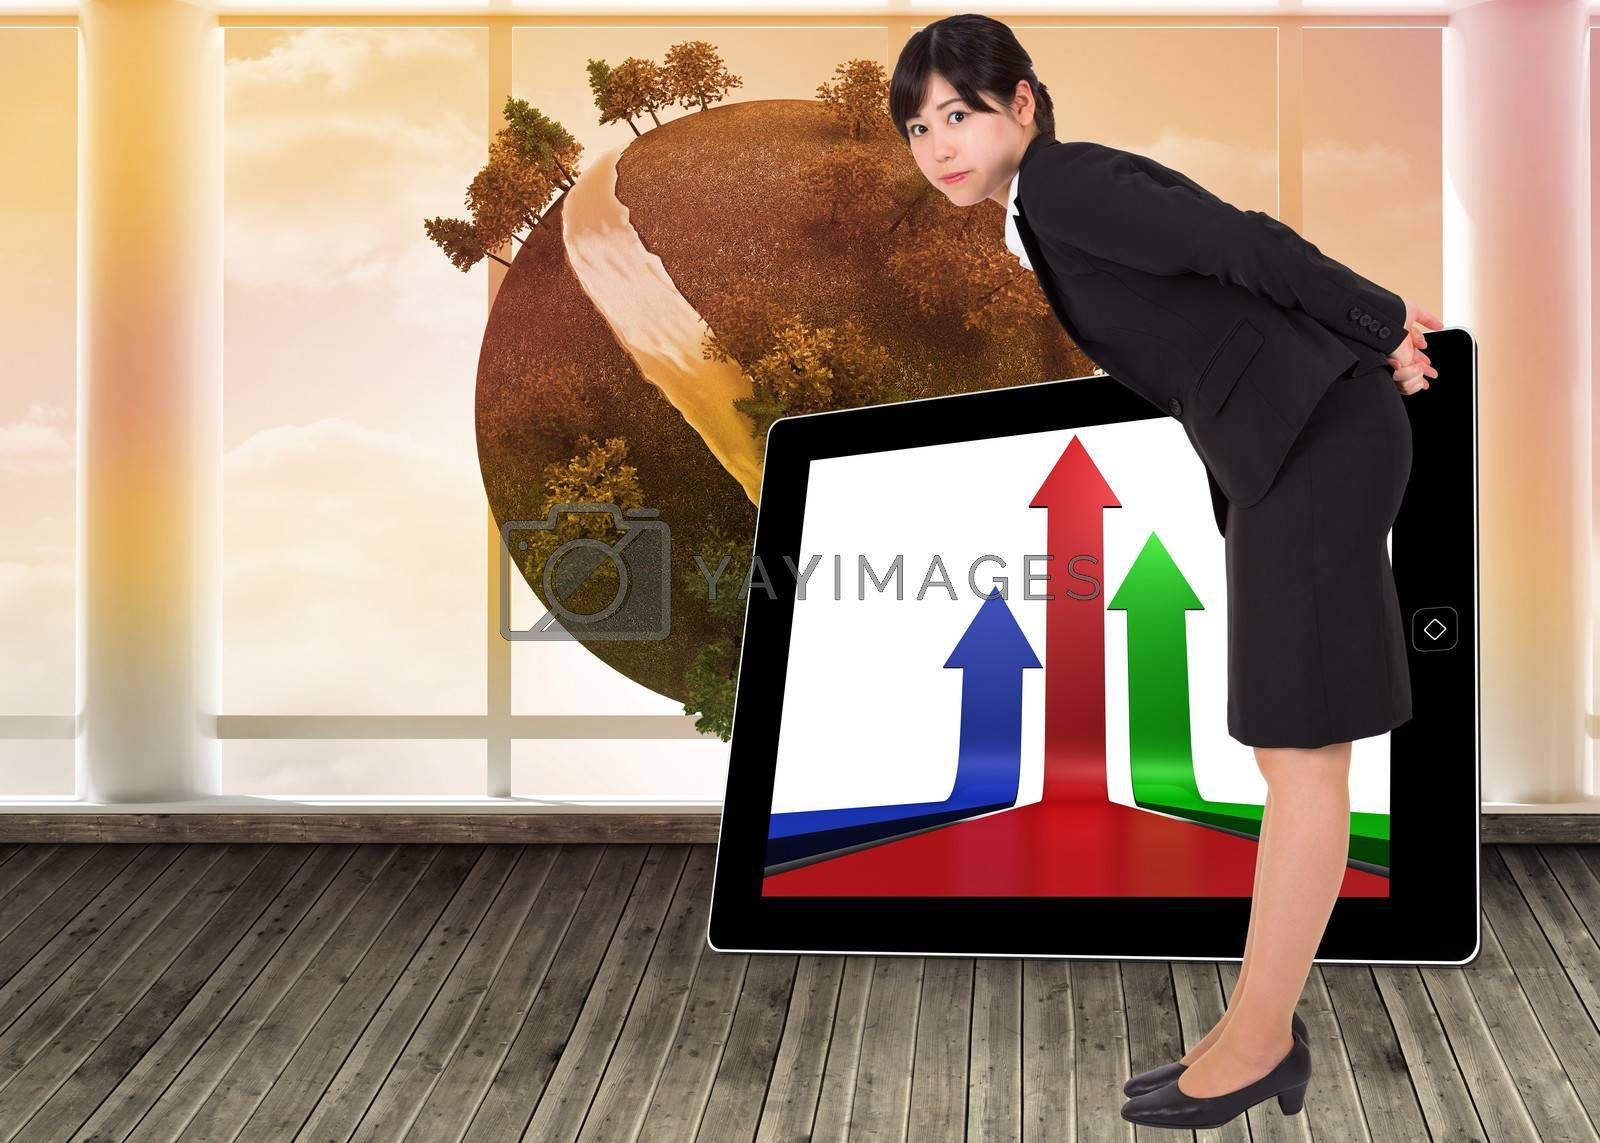 Serious businesswoman bending against digital earth floating in room